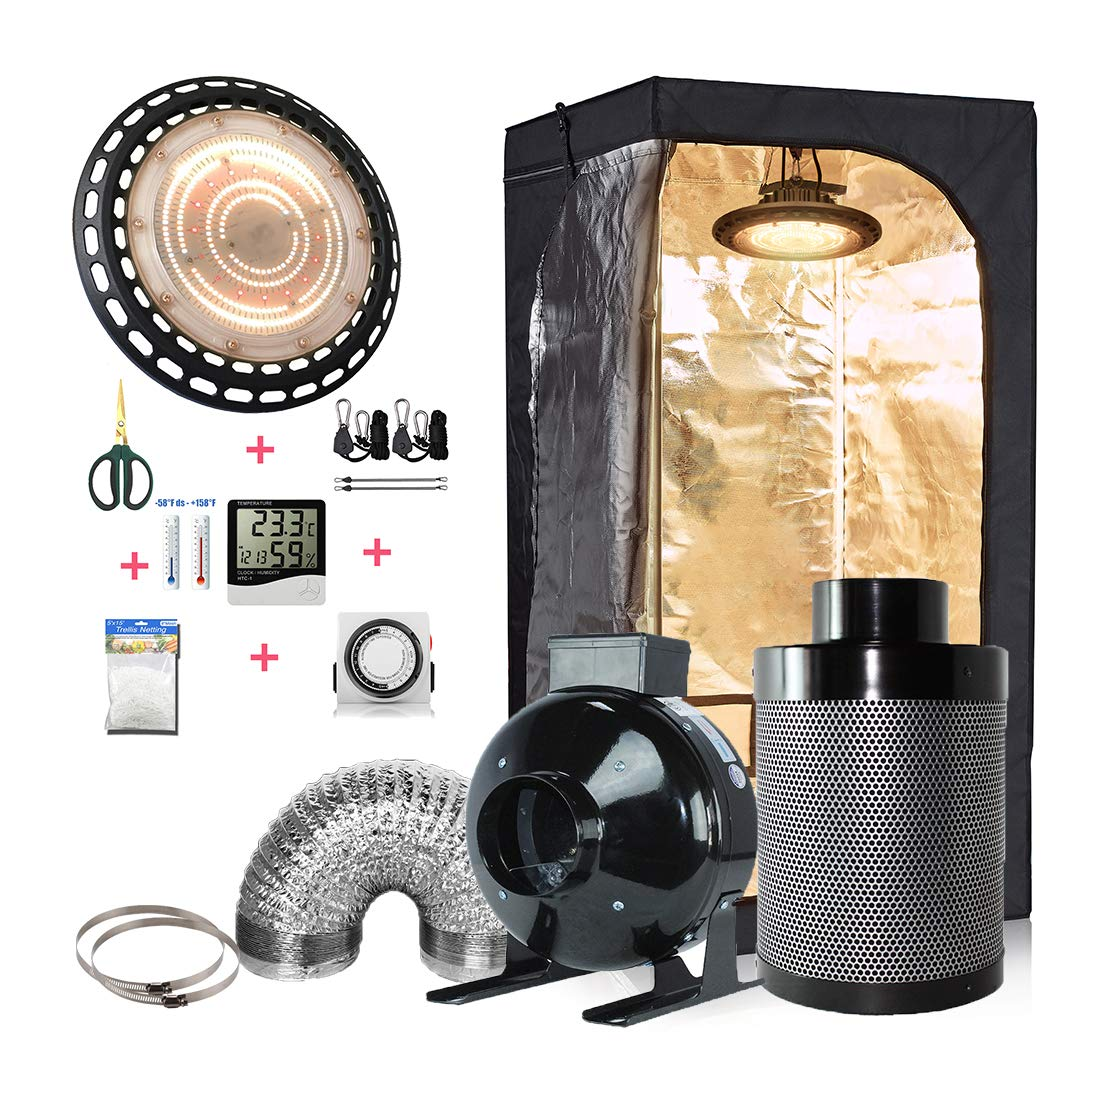 cdmall Grow Tent + 300W LED Real Full Spectrum LED Grow+ 4'' Inline Fan Air Carbon Filter Ventilation Kit Indoor Grow Tent Complete Kit (300W Light+32''x32''x63'' Tent Kit+4''Filter Combo)